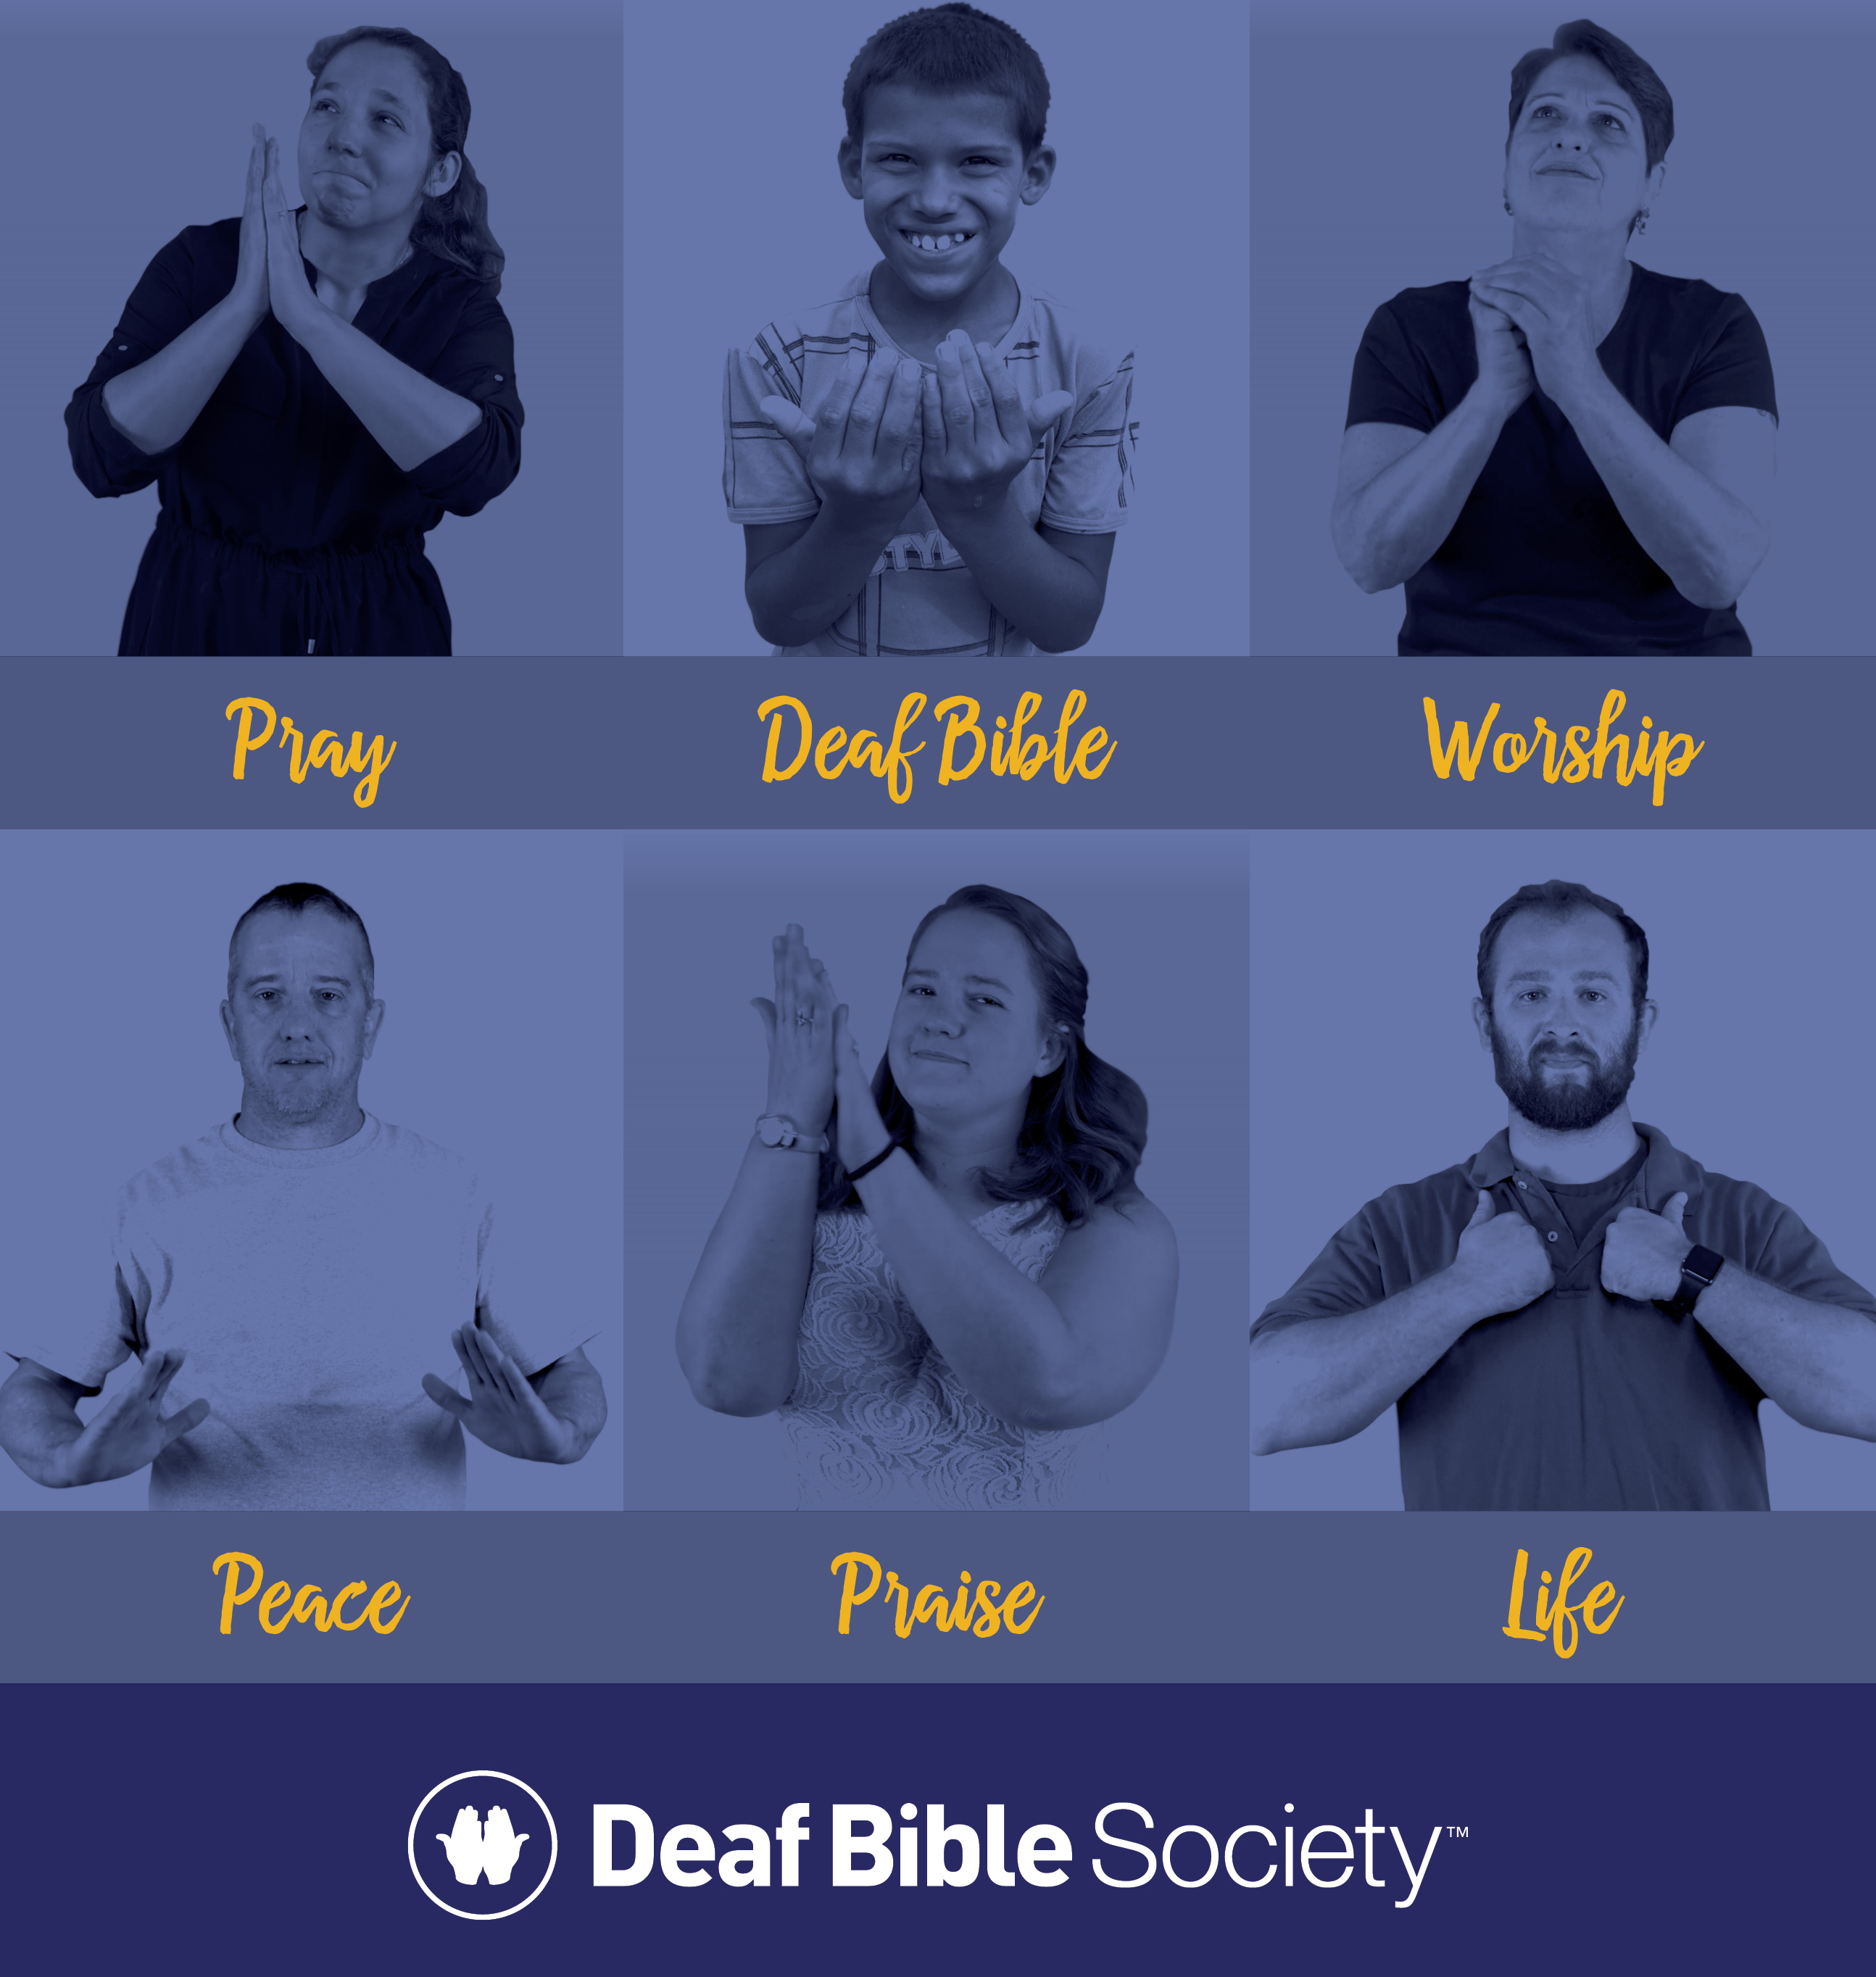 Deaf Bible offers free digital wallpapers to spur prayer, advocacy